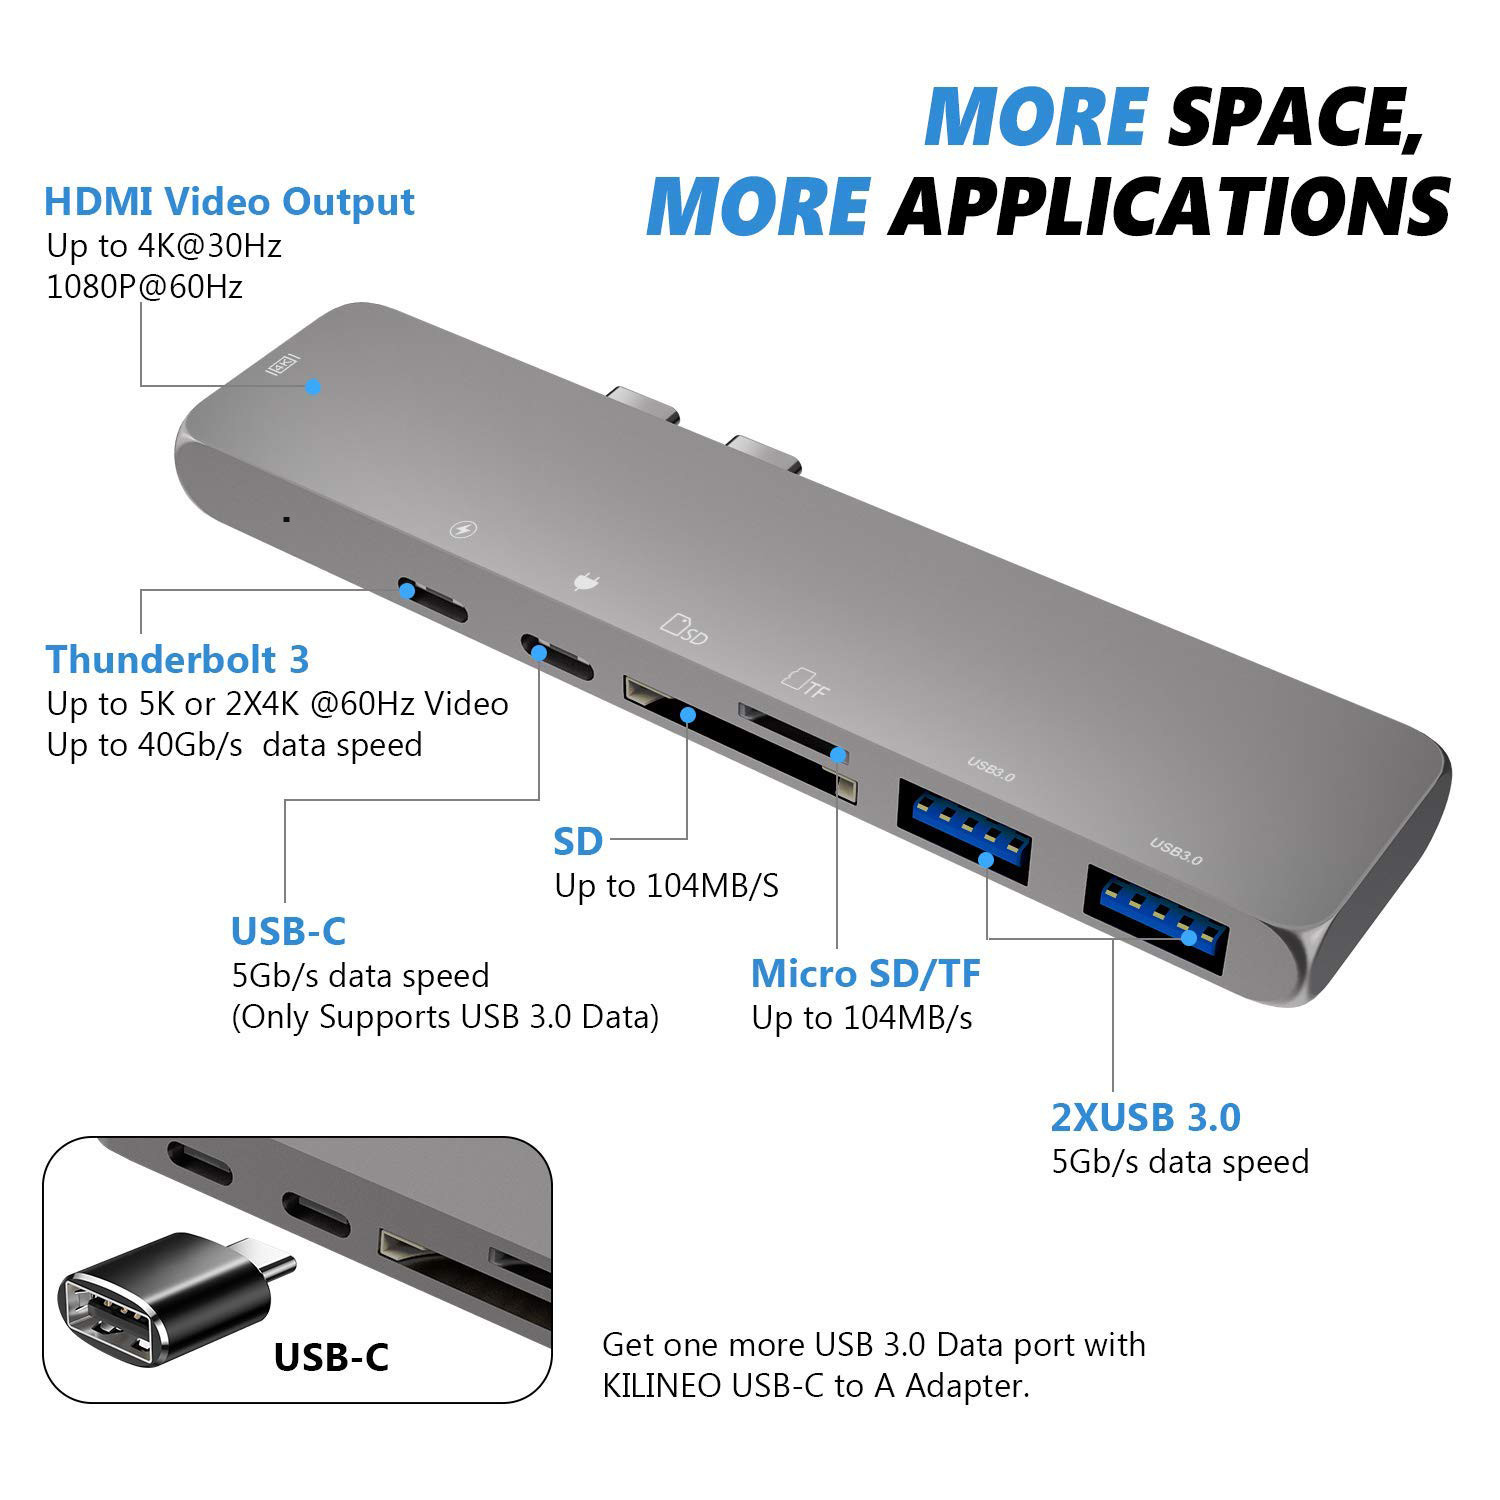 7 In 1 Type C Hub Usb To 3 Port 30 Hdm I Hdmi Adapter Macbook Pro With Sdtf Card You Can Use Two Female Male Adapters Extend The Connectors If Your Has A Cover